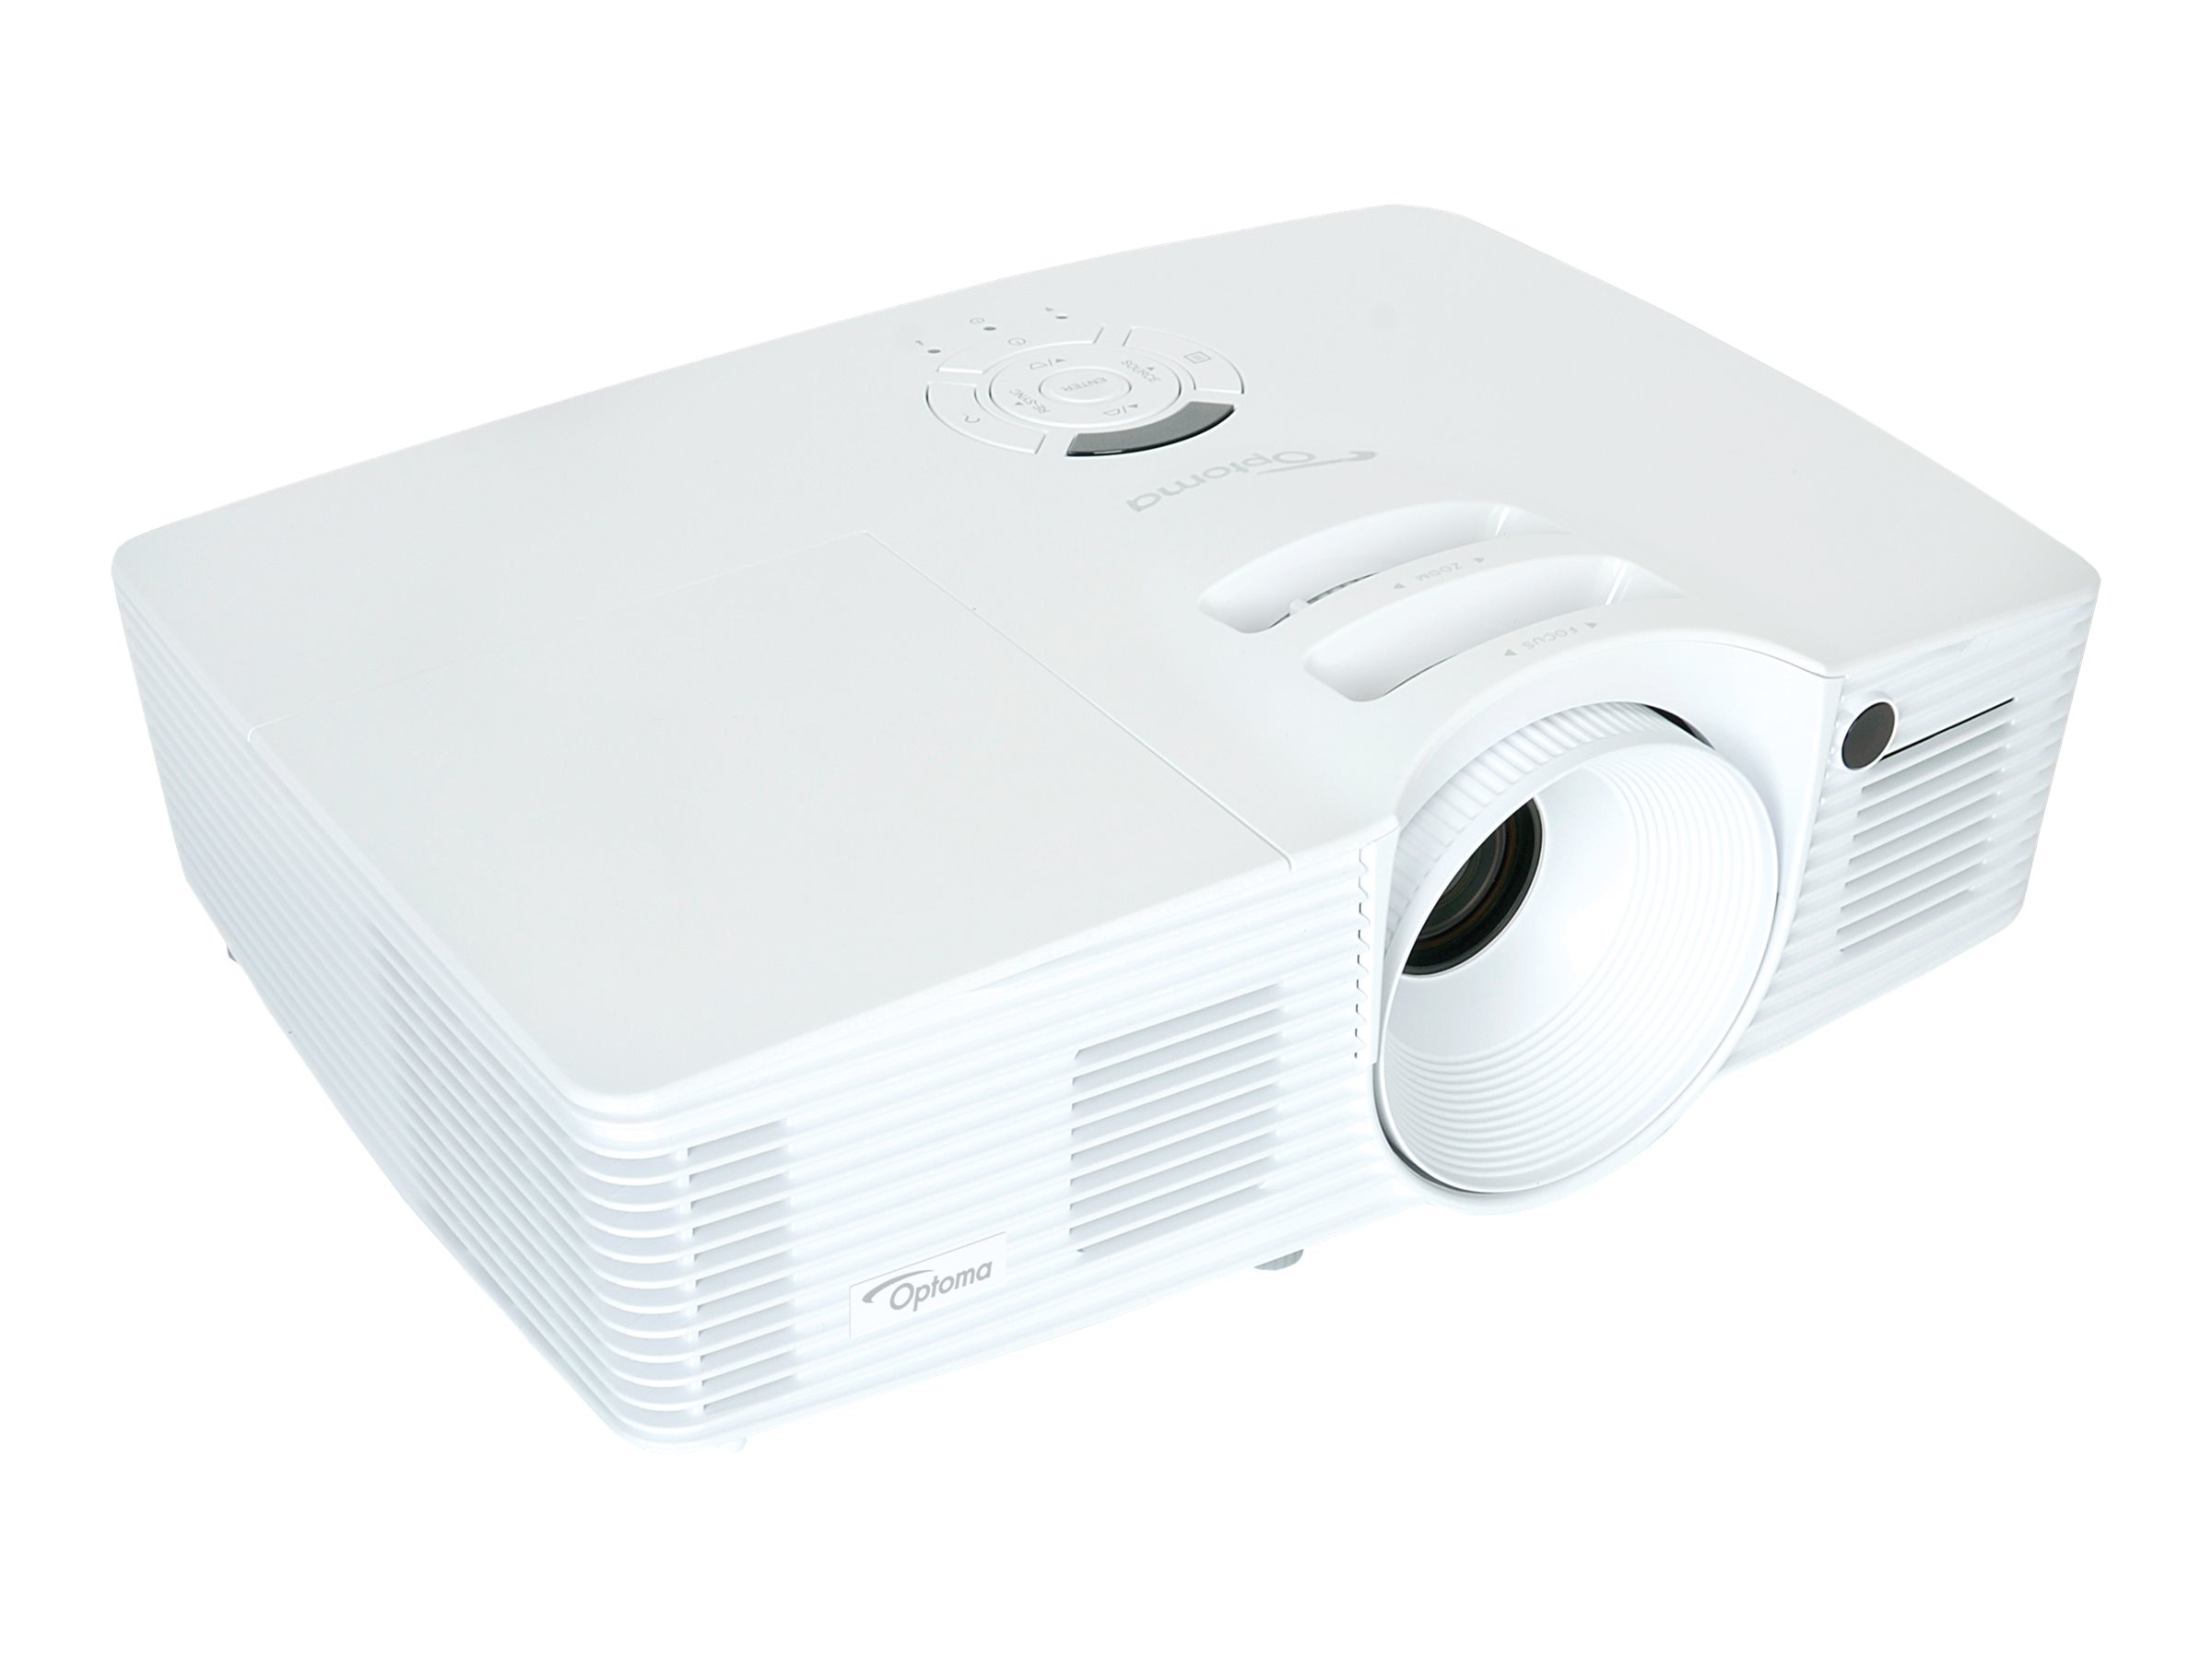 Optoma Technology HD28DSE Image 3